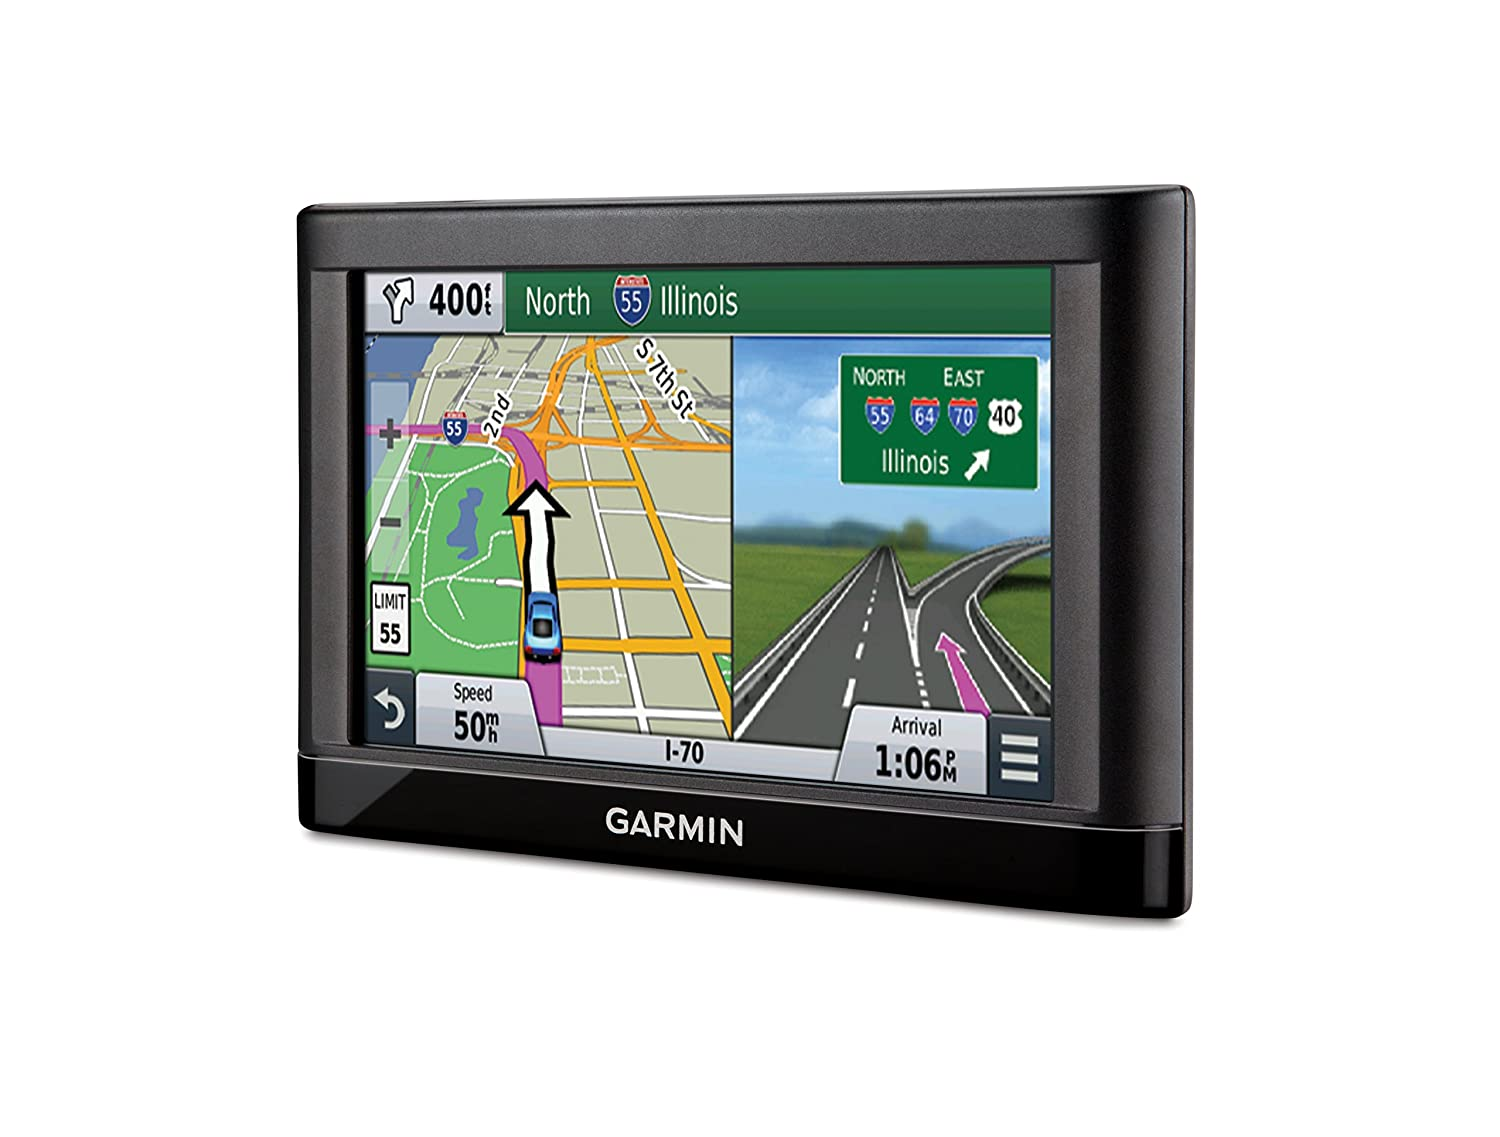 Garmin c330 instruction manual ebook array nuvi55lmt garmin gps user manual basic instruction manual u2022 rh ryanshtuff co fandeluxe Images